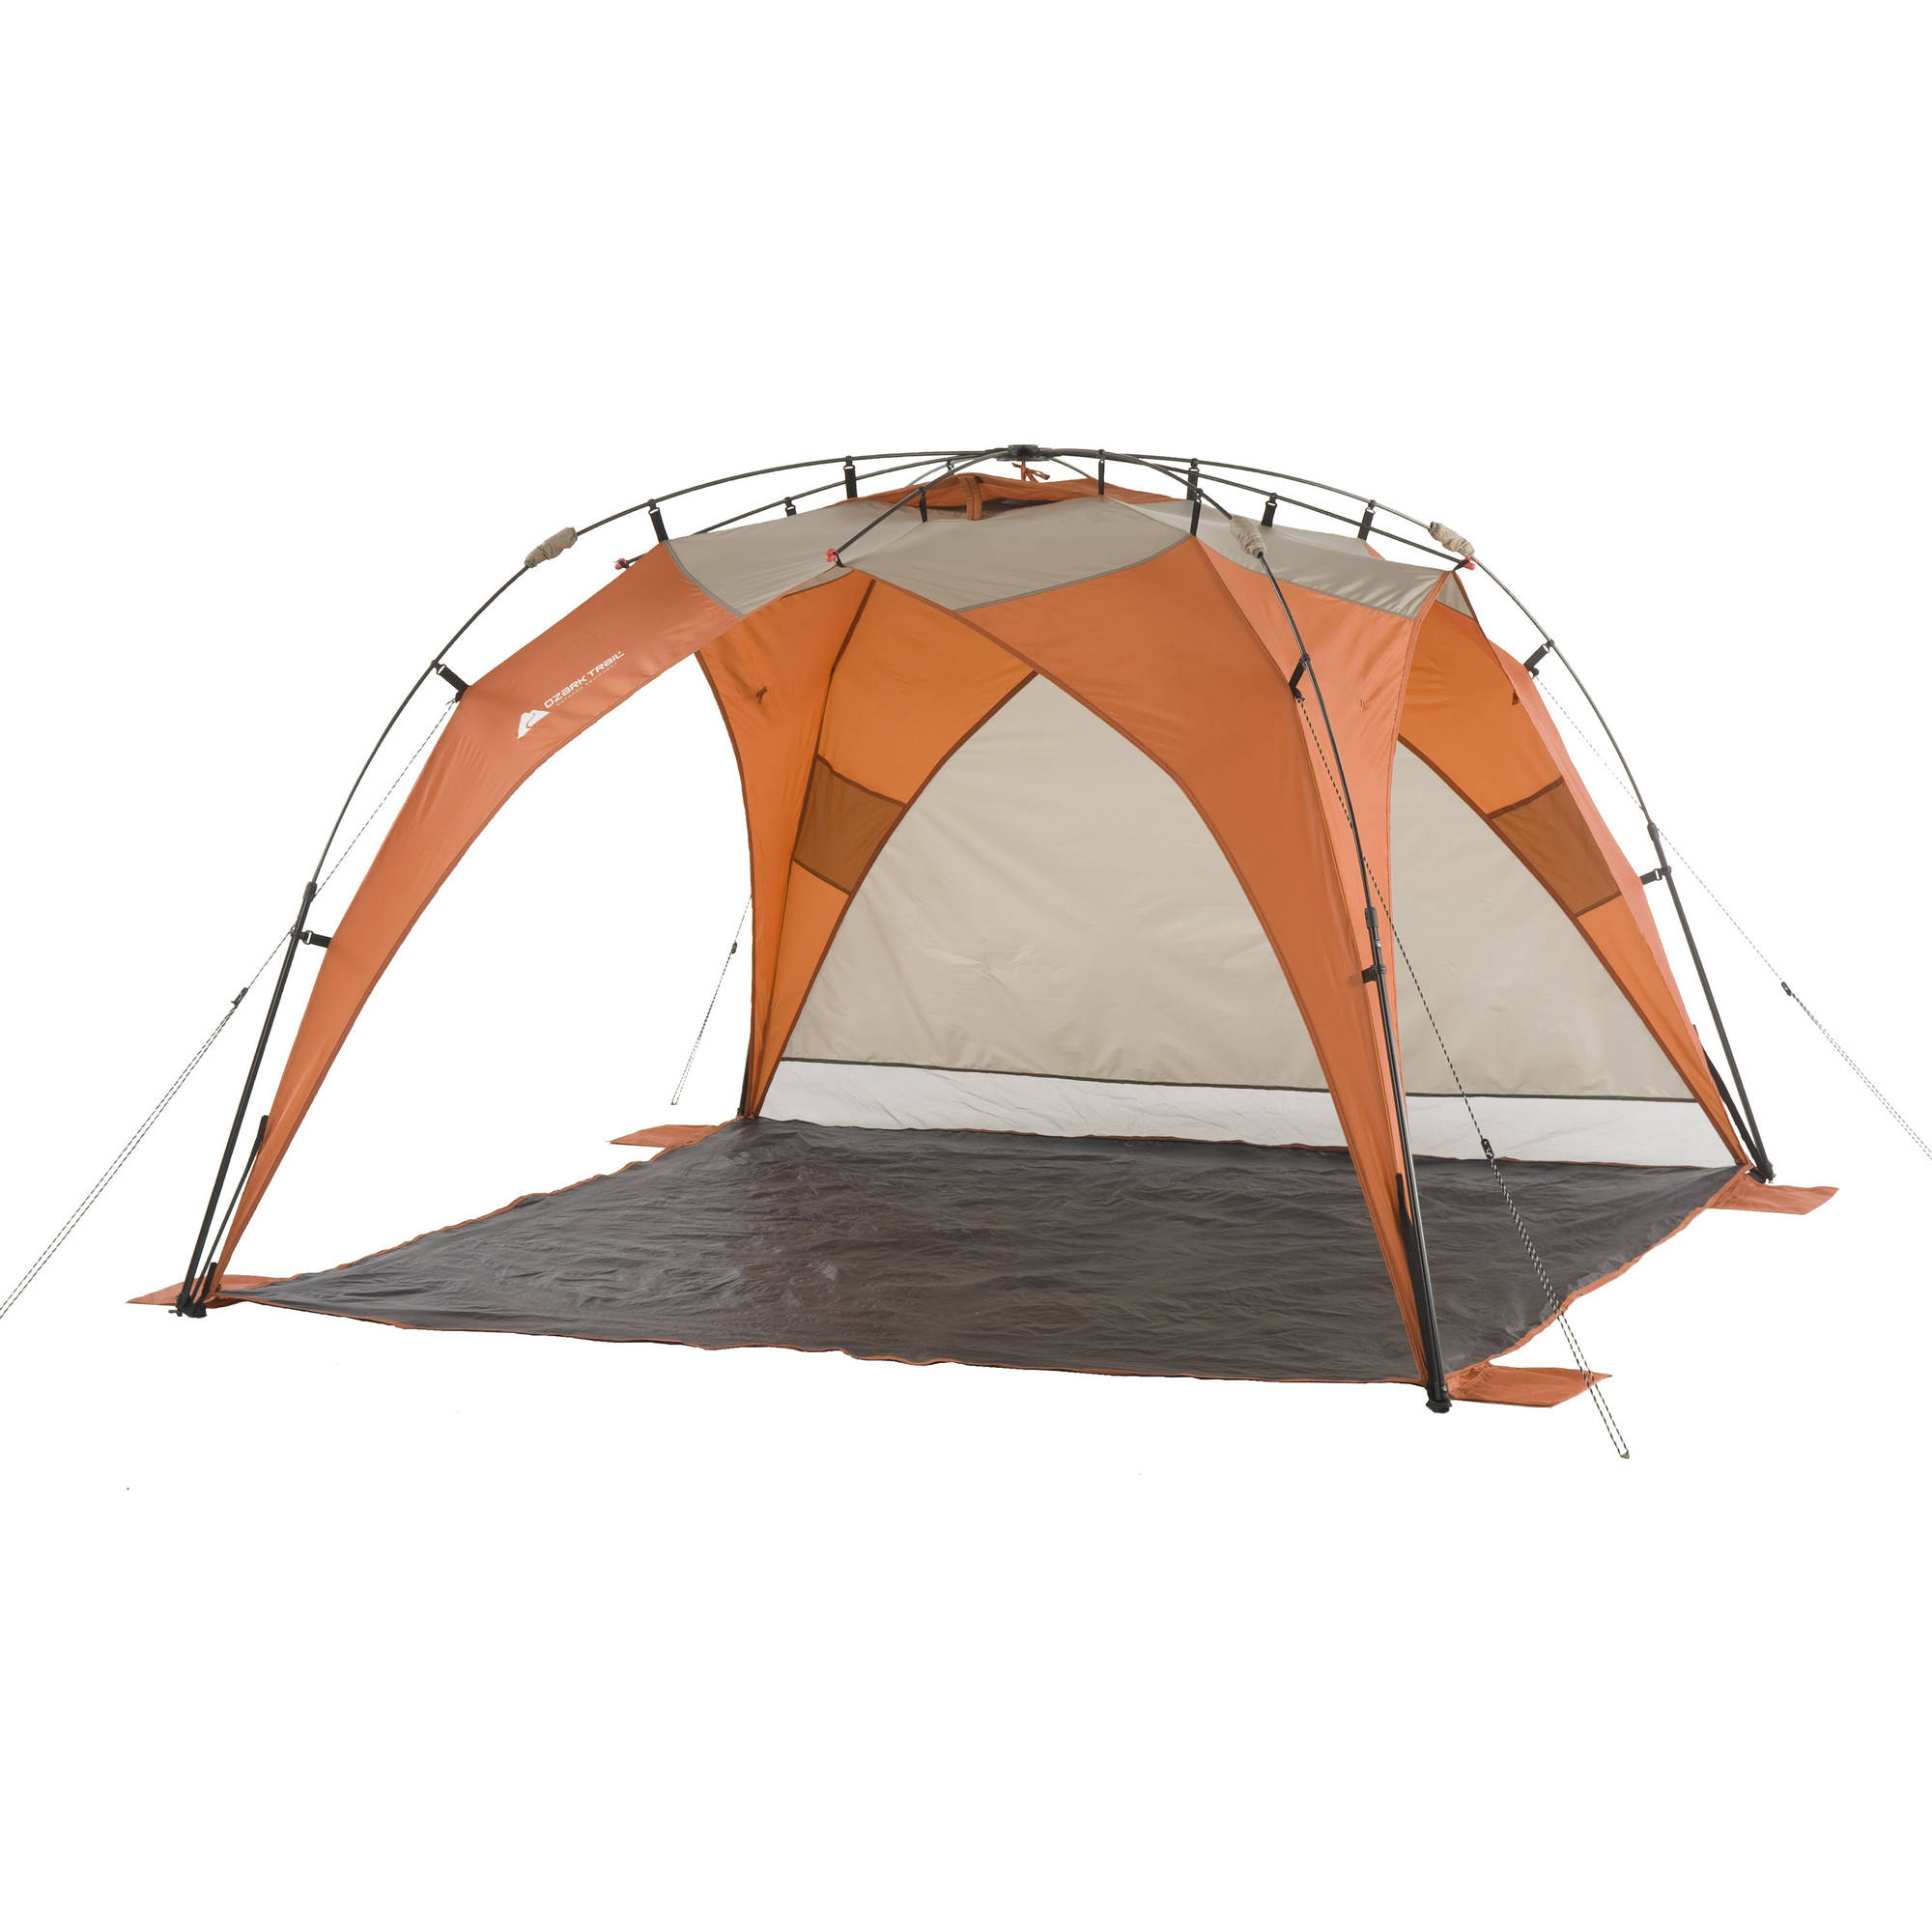 Ozark Trail 8u0027 x 8u0027 Instant Sun Shade (64 sq.ft Coverage  sc 1 st  eBay & Ozark Trail Sun Shade Portable Tent 8x8 Instant Beach Outdoor ...